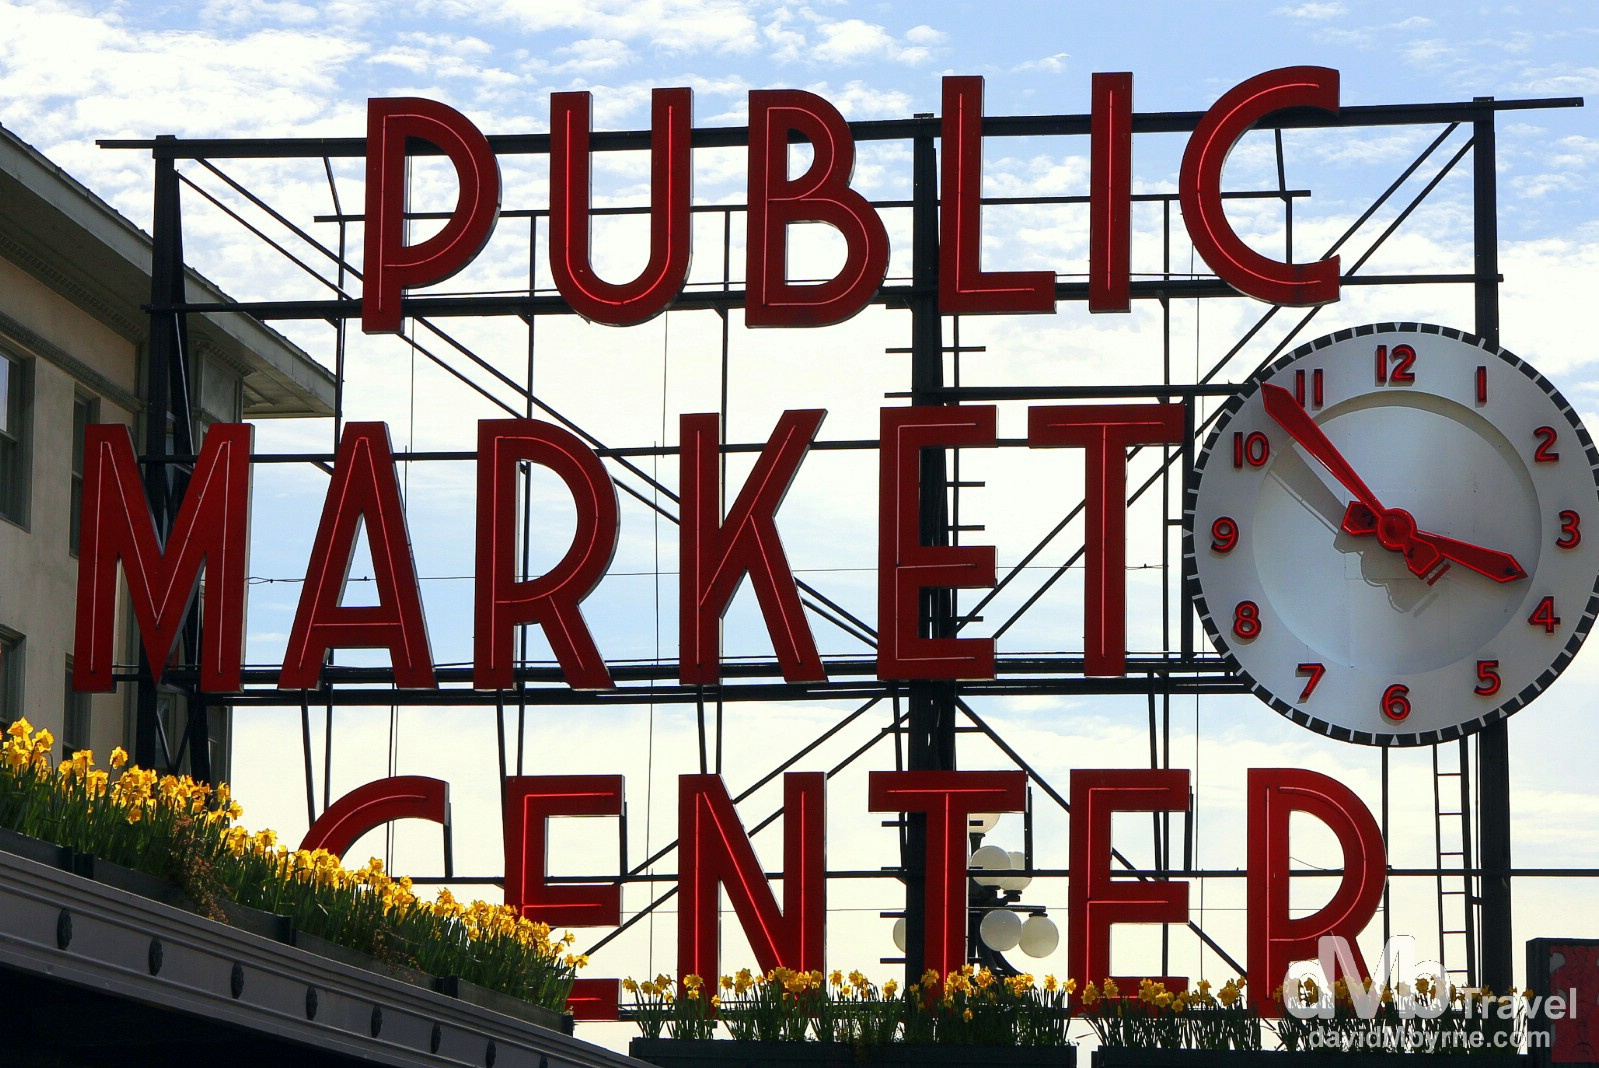 The famous Pike Place Market sign in Seattle, Washington, USA. March 25th 2013.